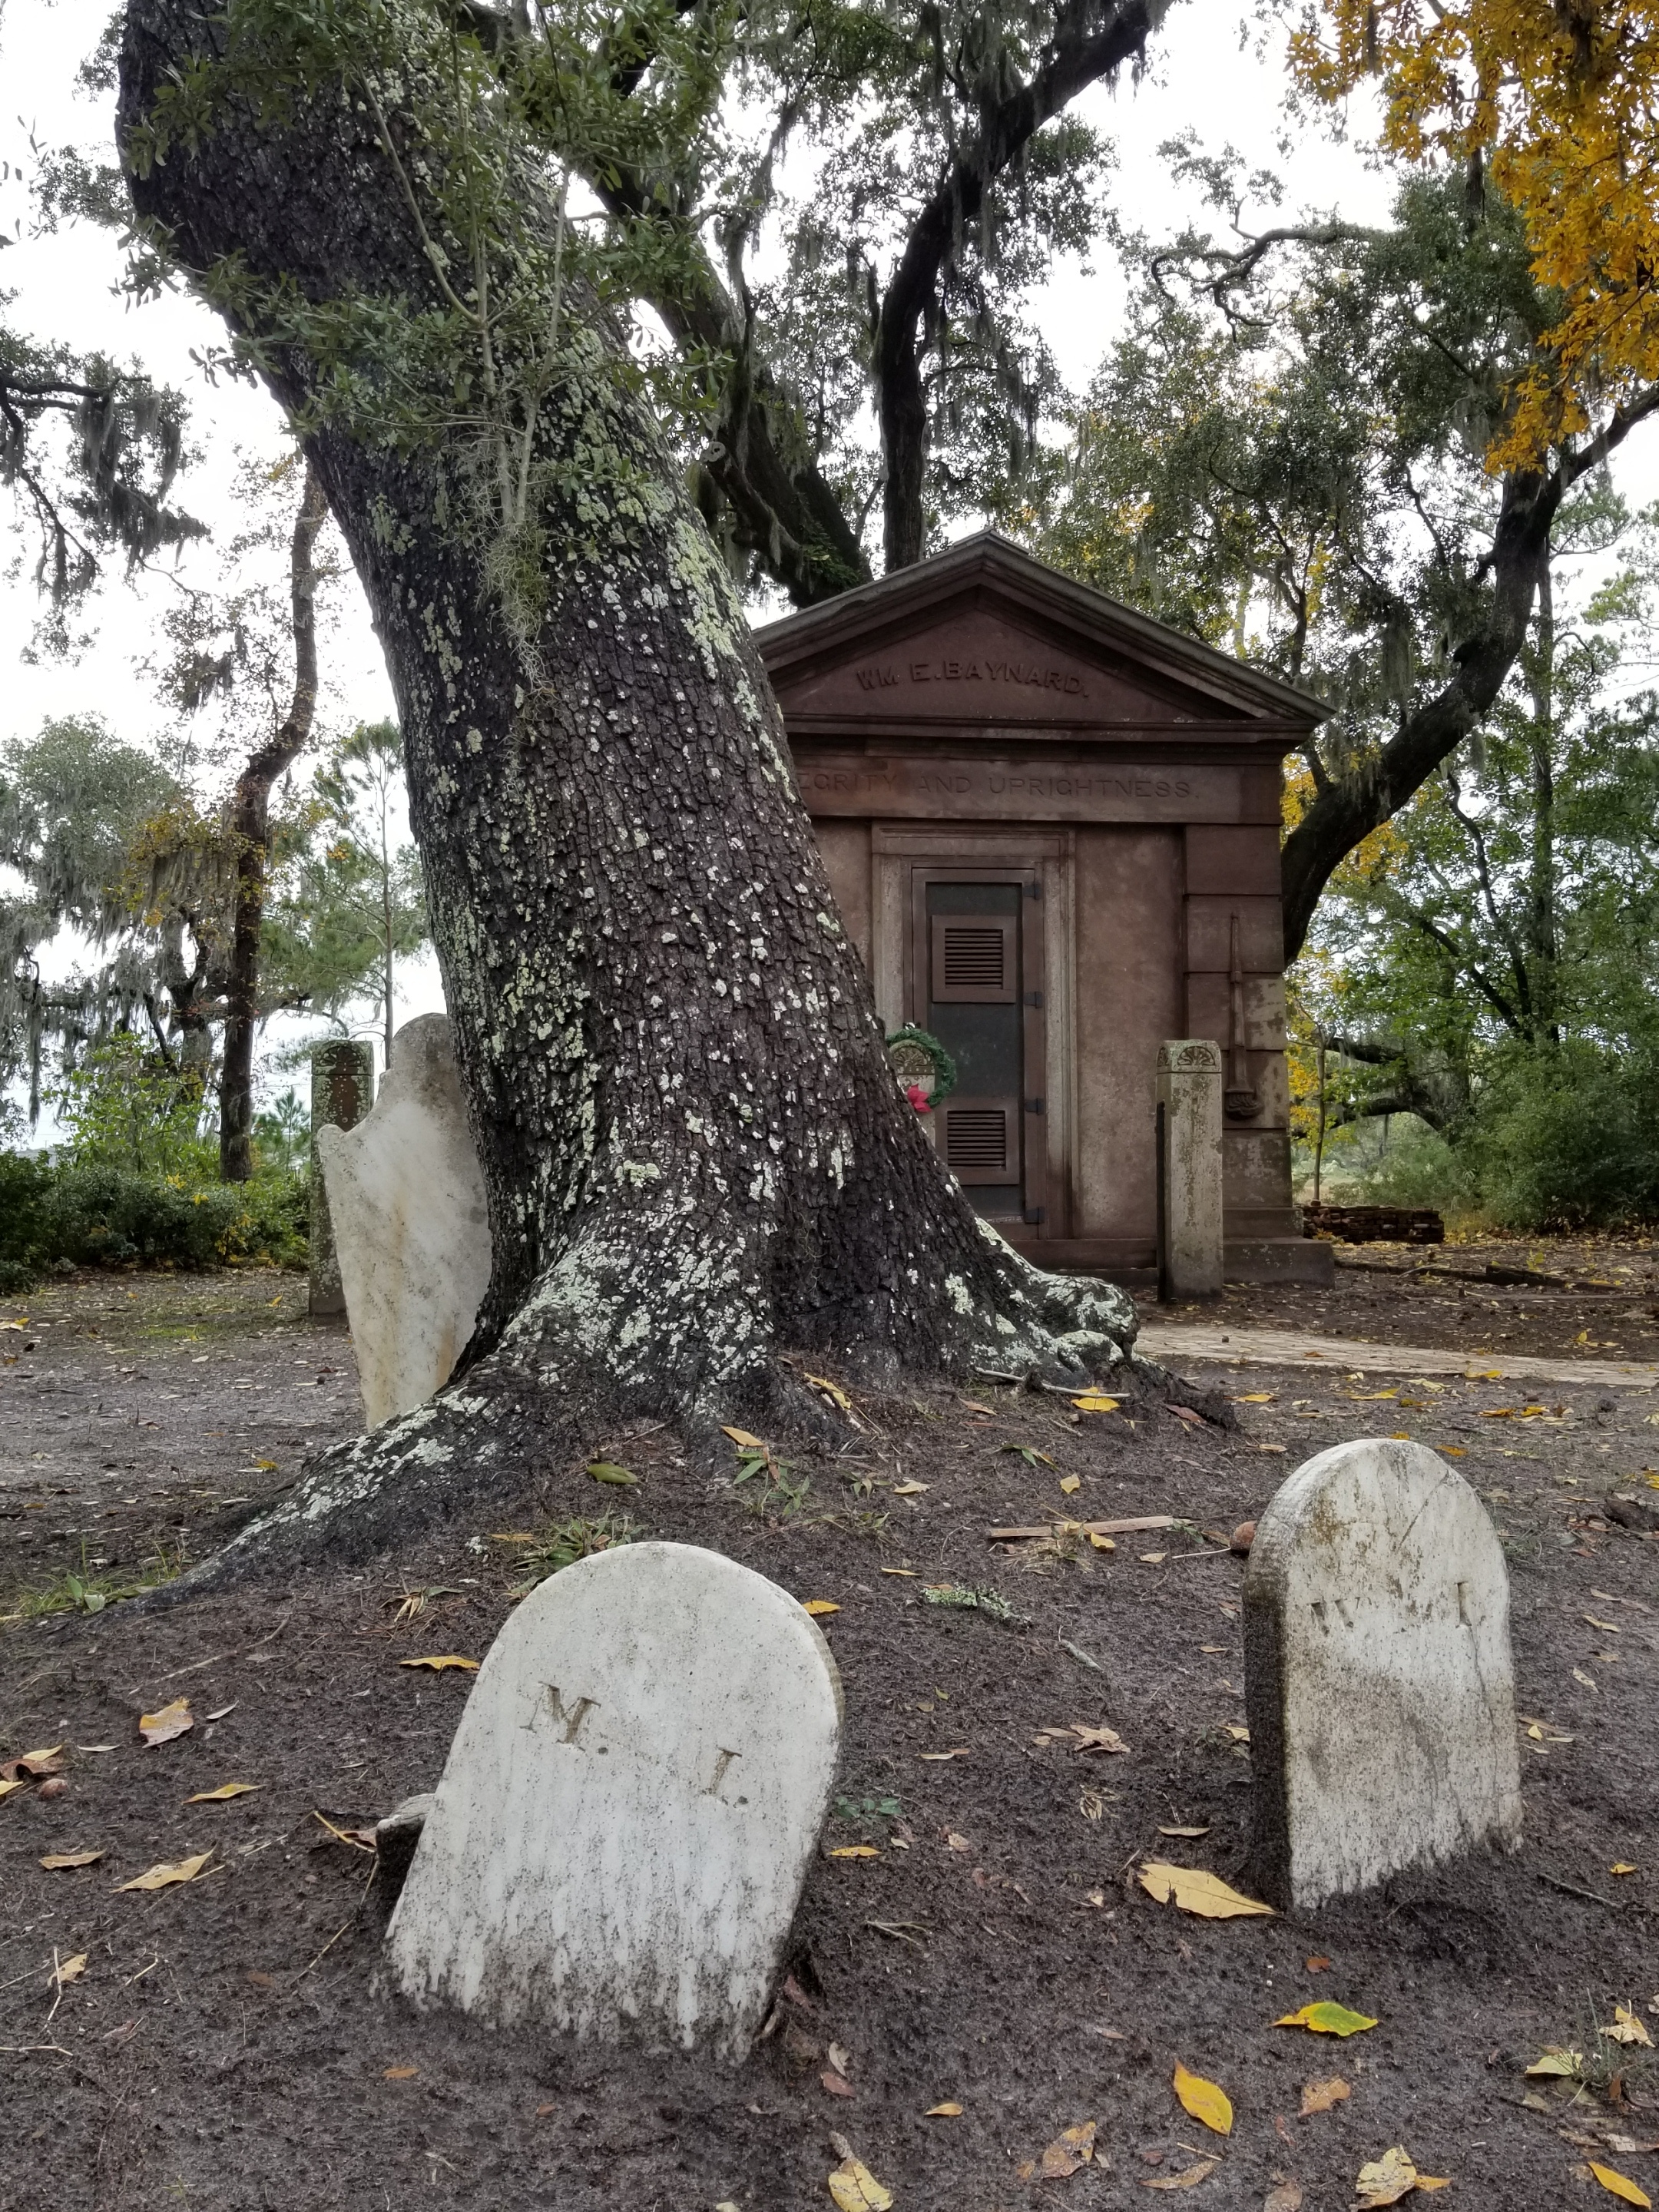 Looking more carefully, Mary and her husband William Irvine were buried side-by-side - these are their footstones.  The live oak grows from where there bodies rest together.  A touching living memorial.